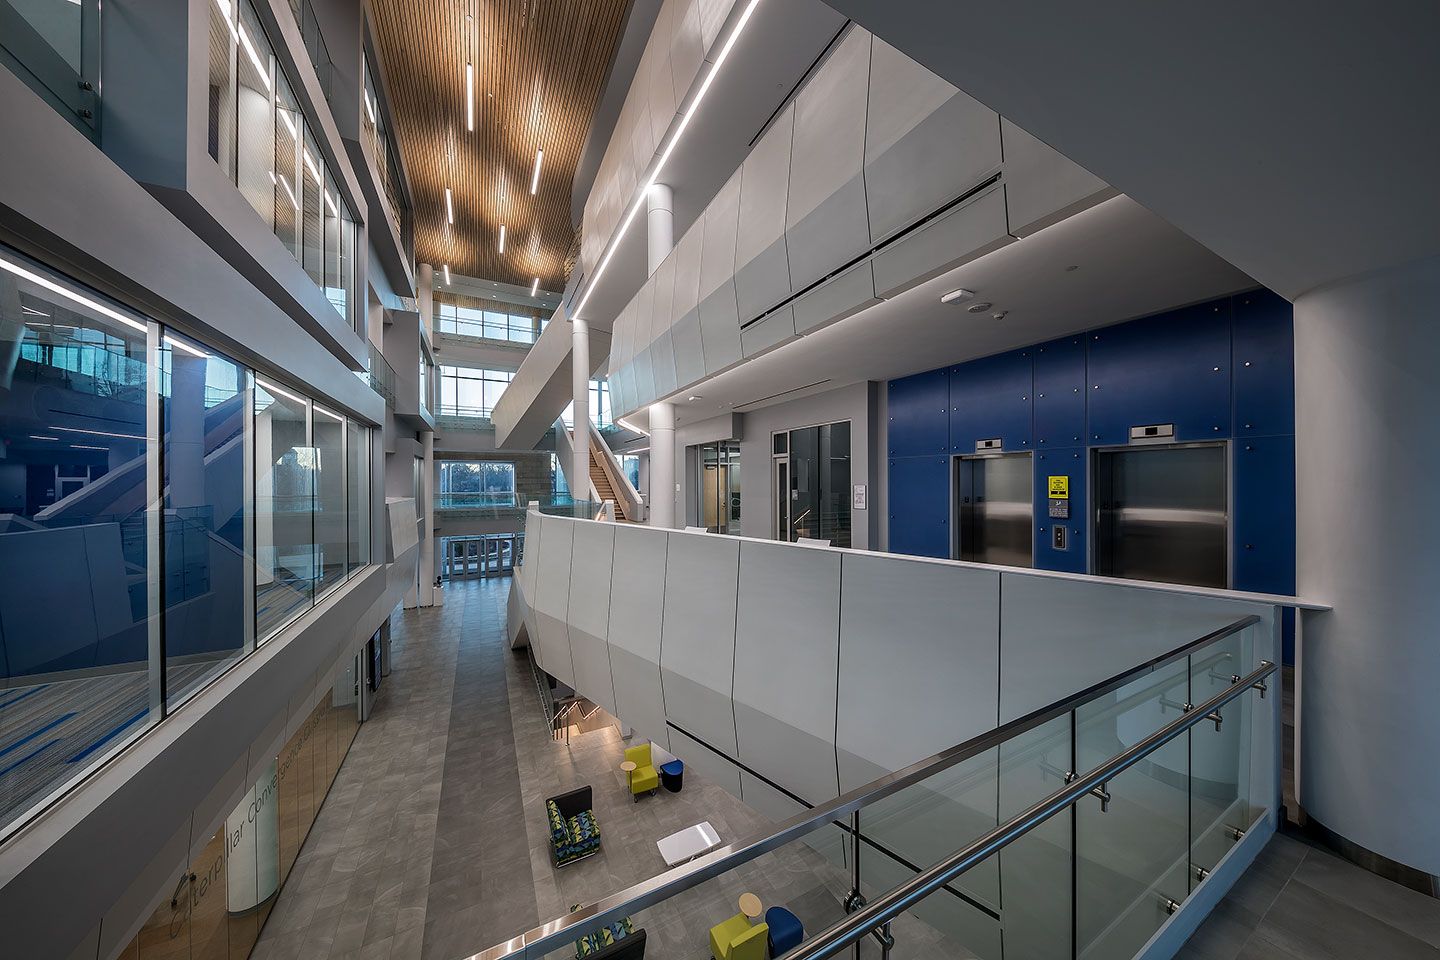 Designed to combine the College of Business and the College of Engineering into a shared facility, the new Bradley University Convergence Center allows each college to maintain separate identities, while sharing common support functions.